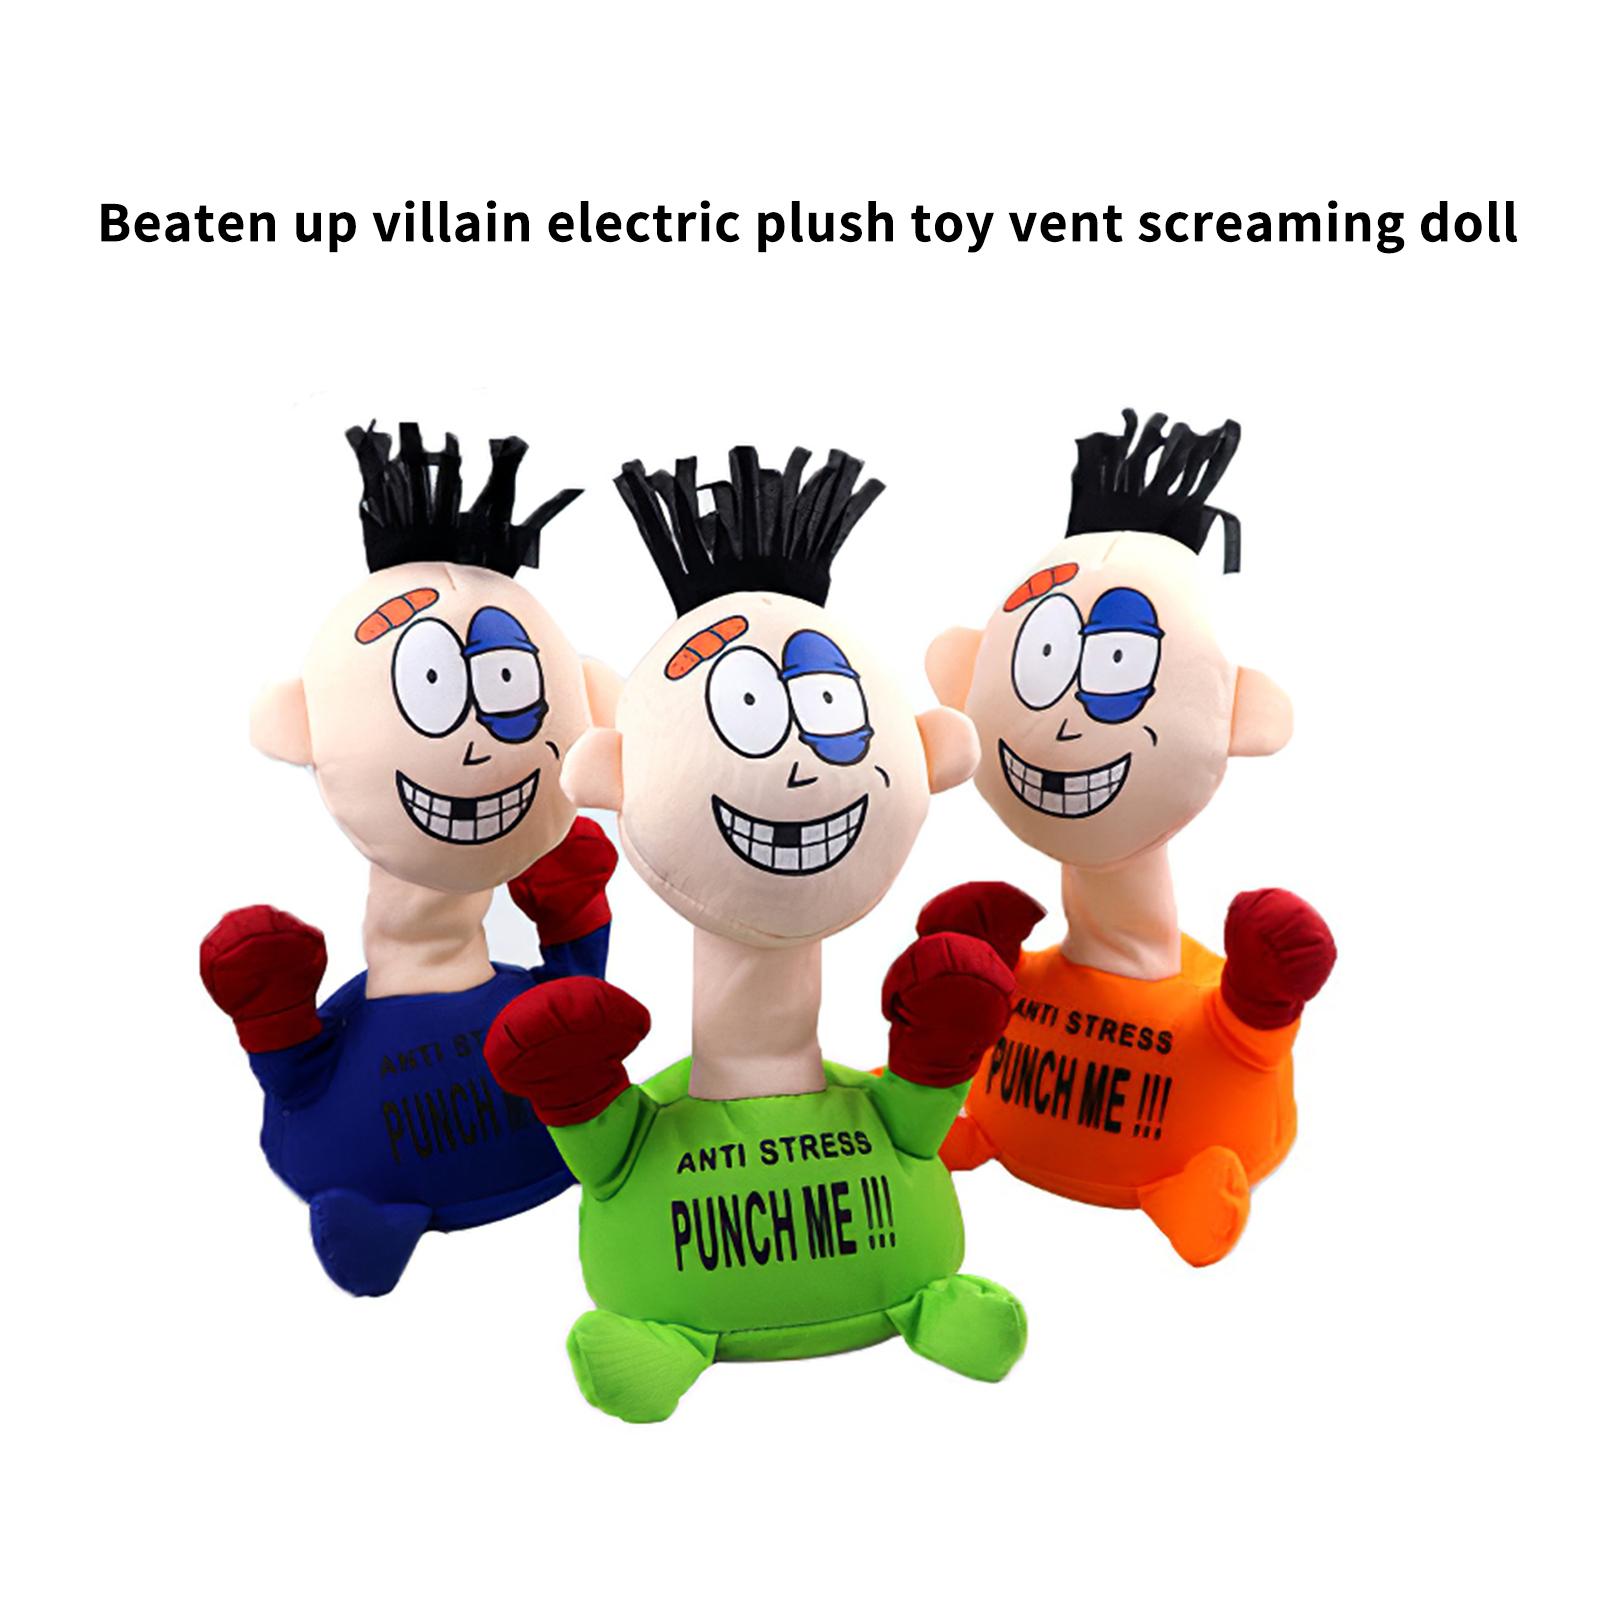 Children Boxing Toys Punch Me Electric Plush Toys Fun Vent Screaming Doll With Simulation Sound Anti-Stress Stuffed Figure Doll